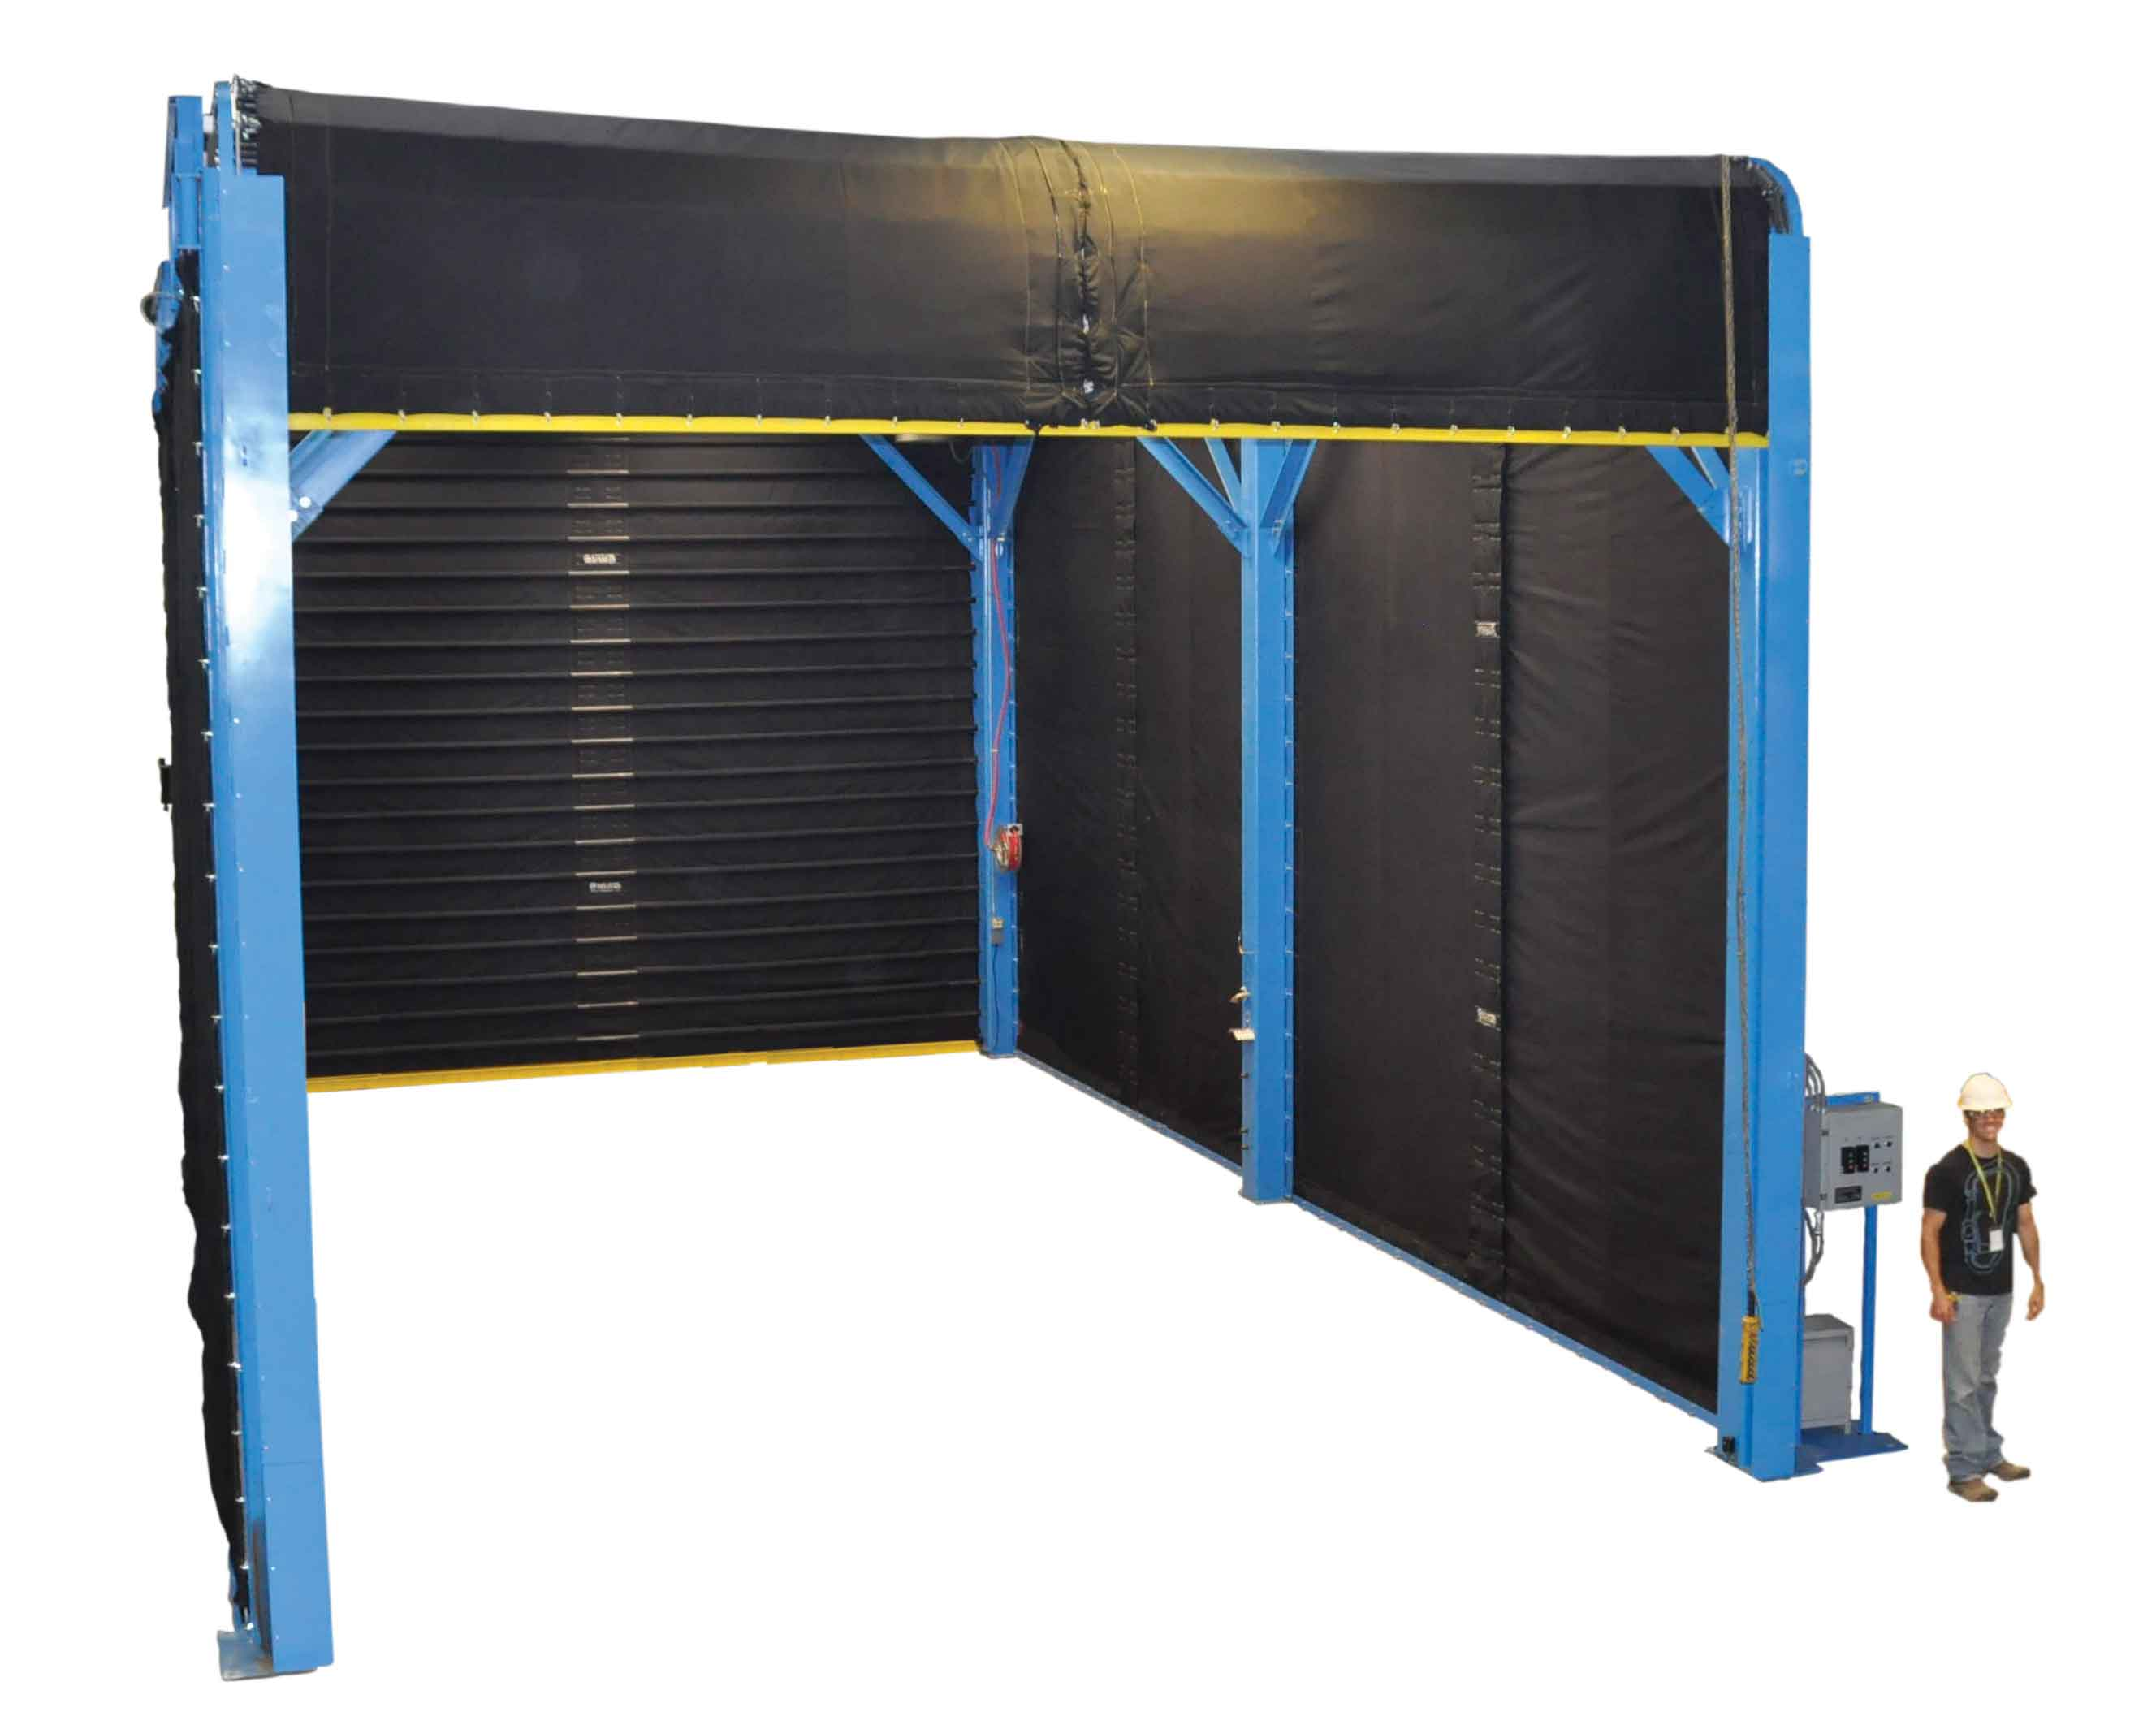 VTI's Chiller Proof & Leak Test Blast Booth for Chiller Manufacturing